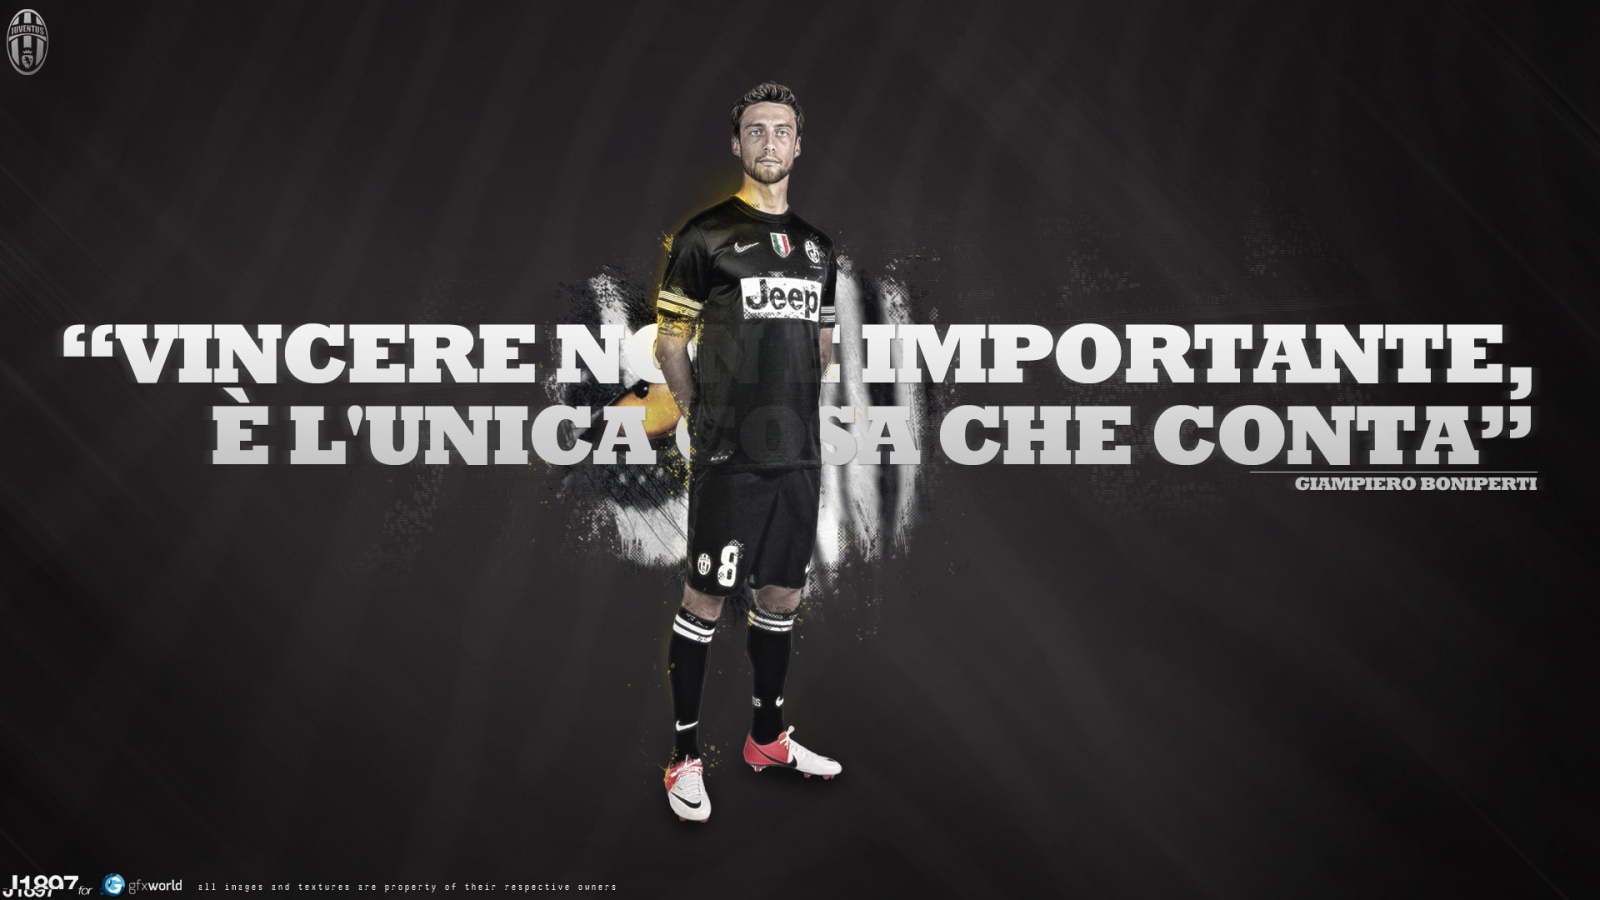 Claudio Marchisio for 1600 x 900 HDTV resolution